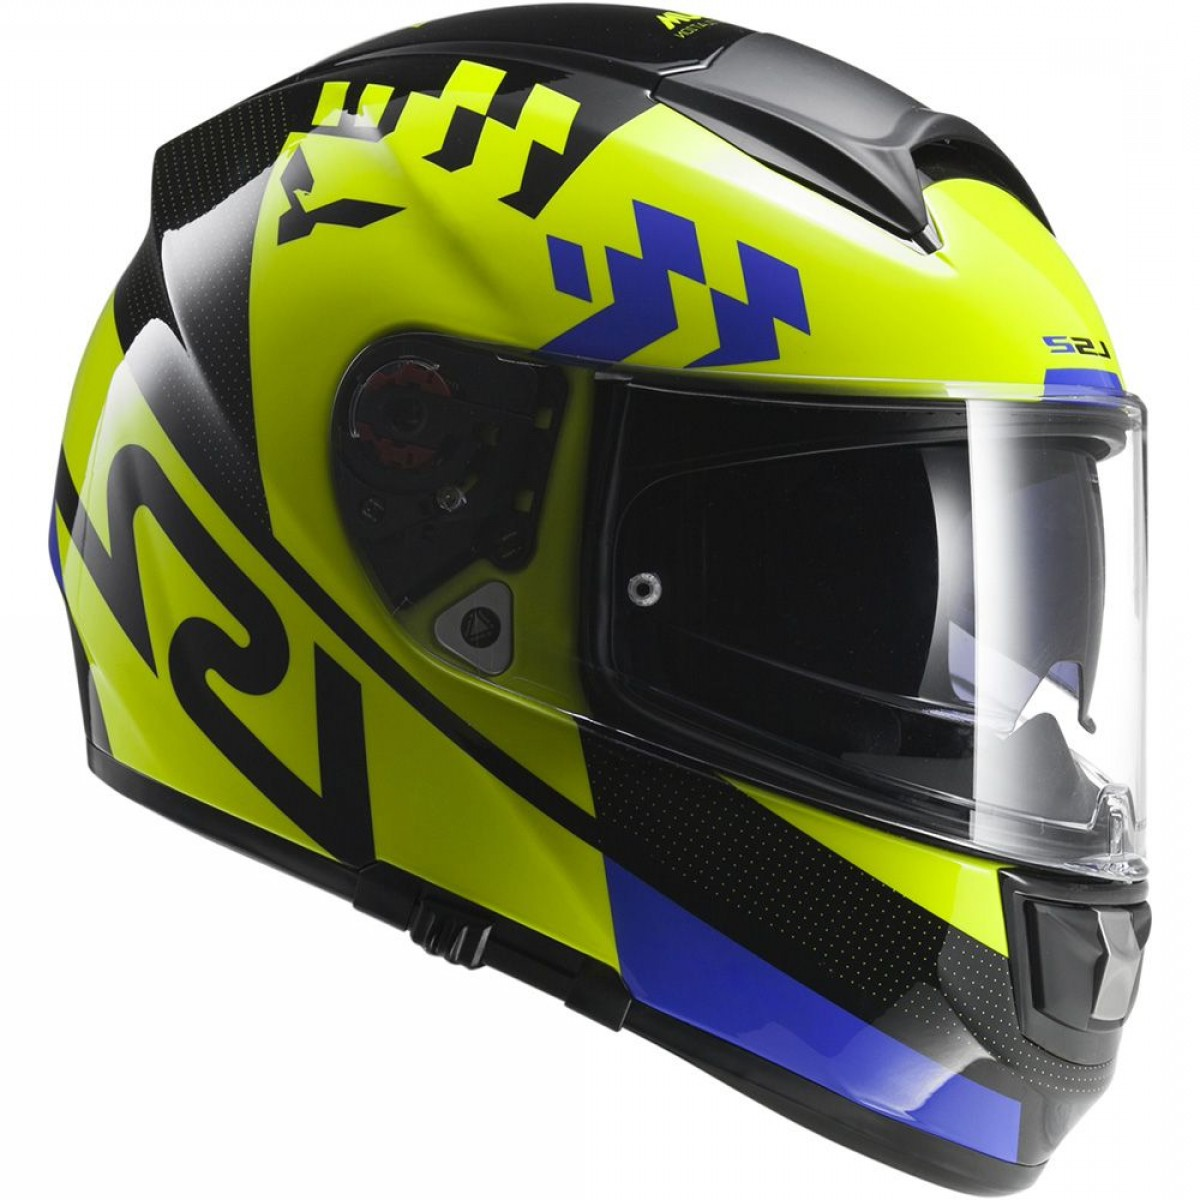 Fighter Helmet Vectors: Ls Ff Vector Podium Hi Vis Yellow Black Fog Fighter Pinlock M Product